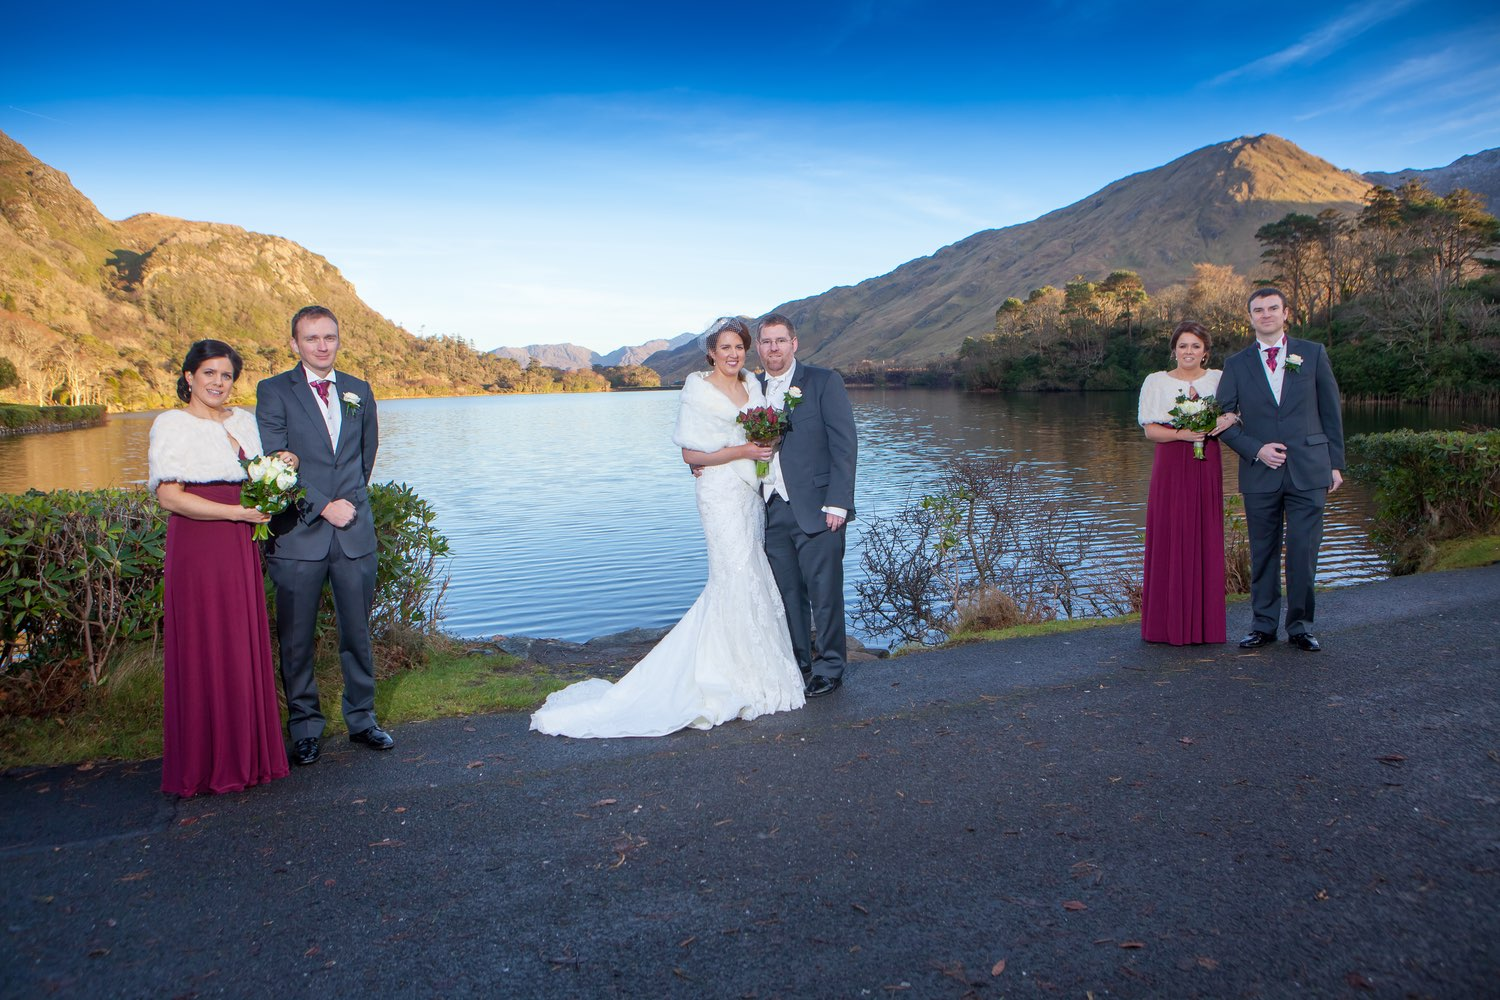 Ann-Marie Aspell and Tom O'Neill and bridal party pose in front of a Connemara landscape